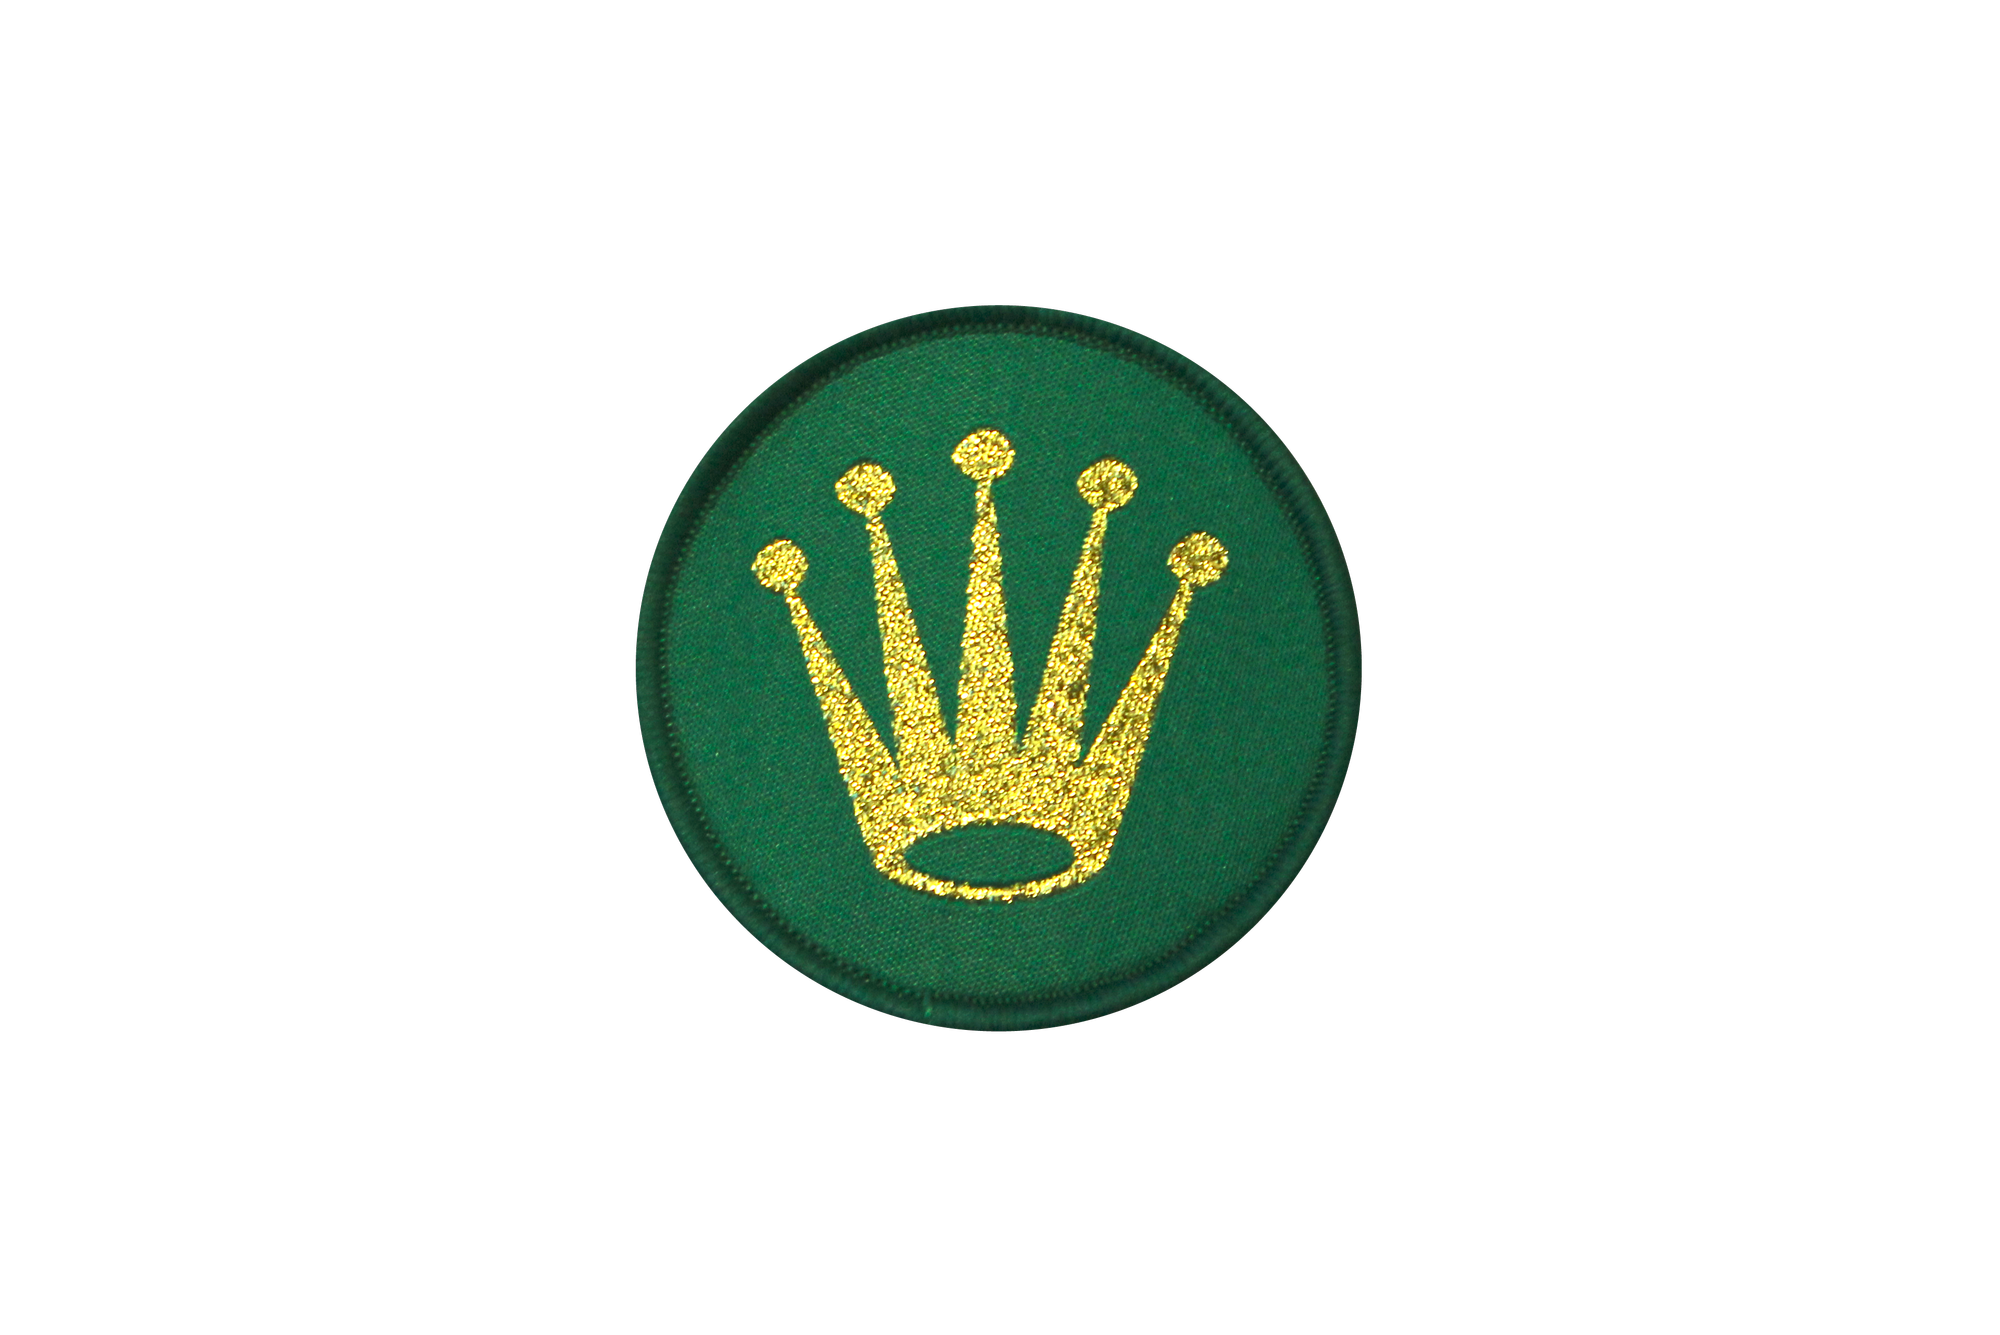 Rolex crown png. Embroidered textile patch kellotarvike